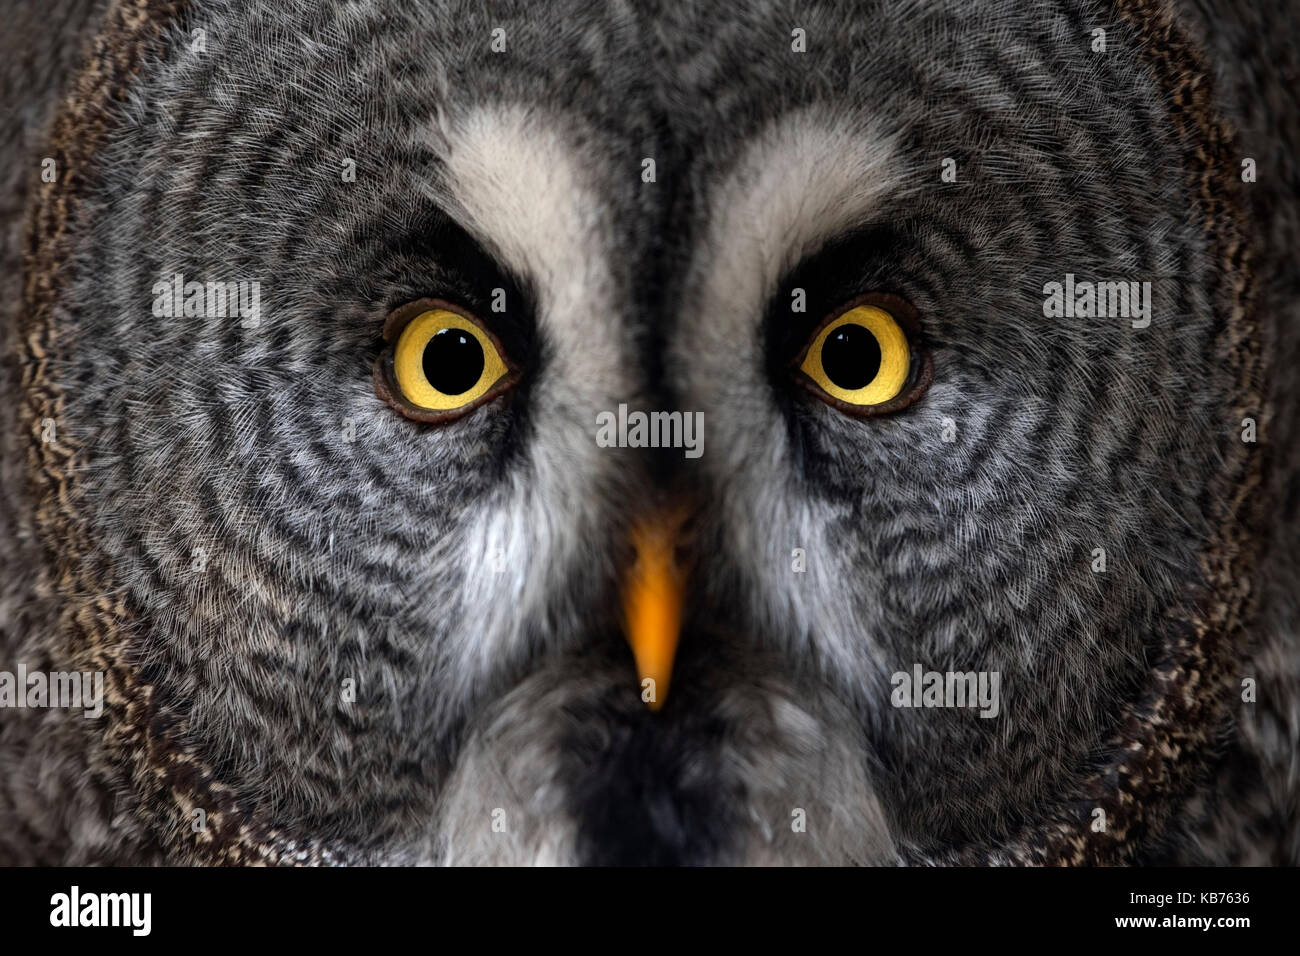 Great Grey Owl (Strix nebulosa) close up portrait, Germany - Stock Image